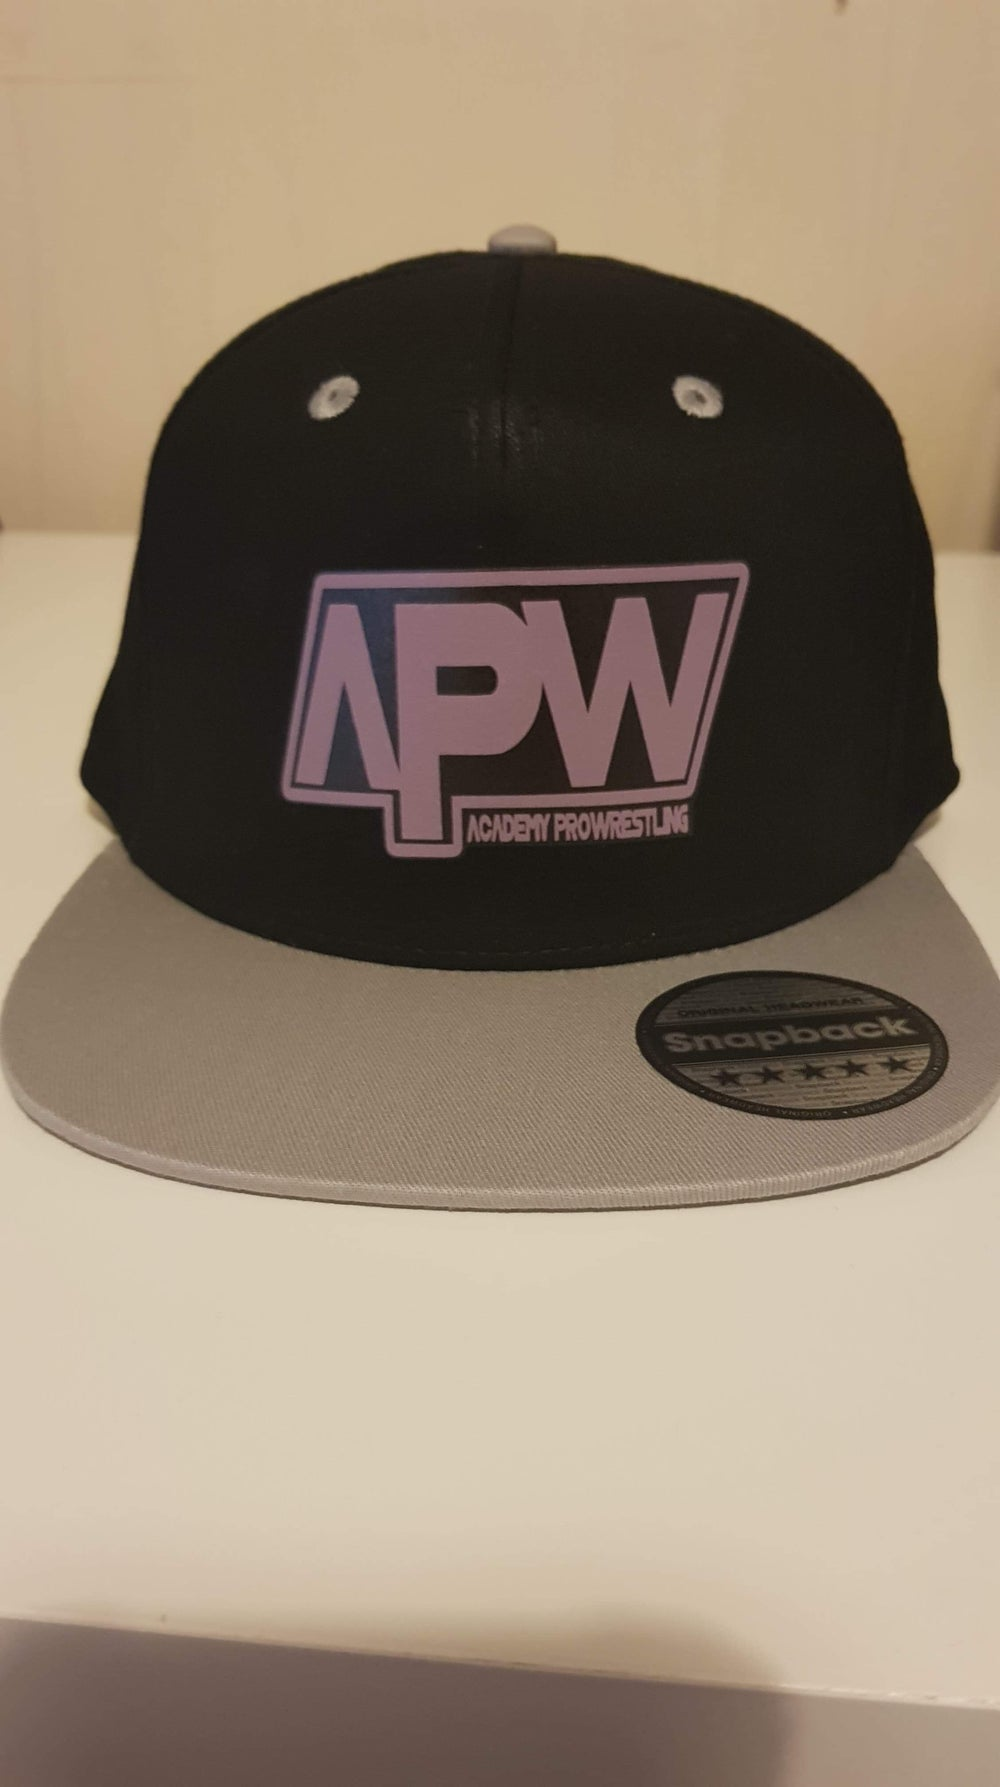 Image of APW Snap back caps